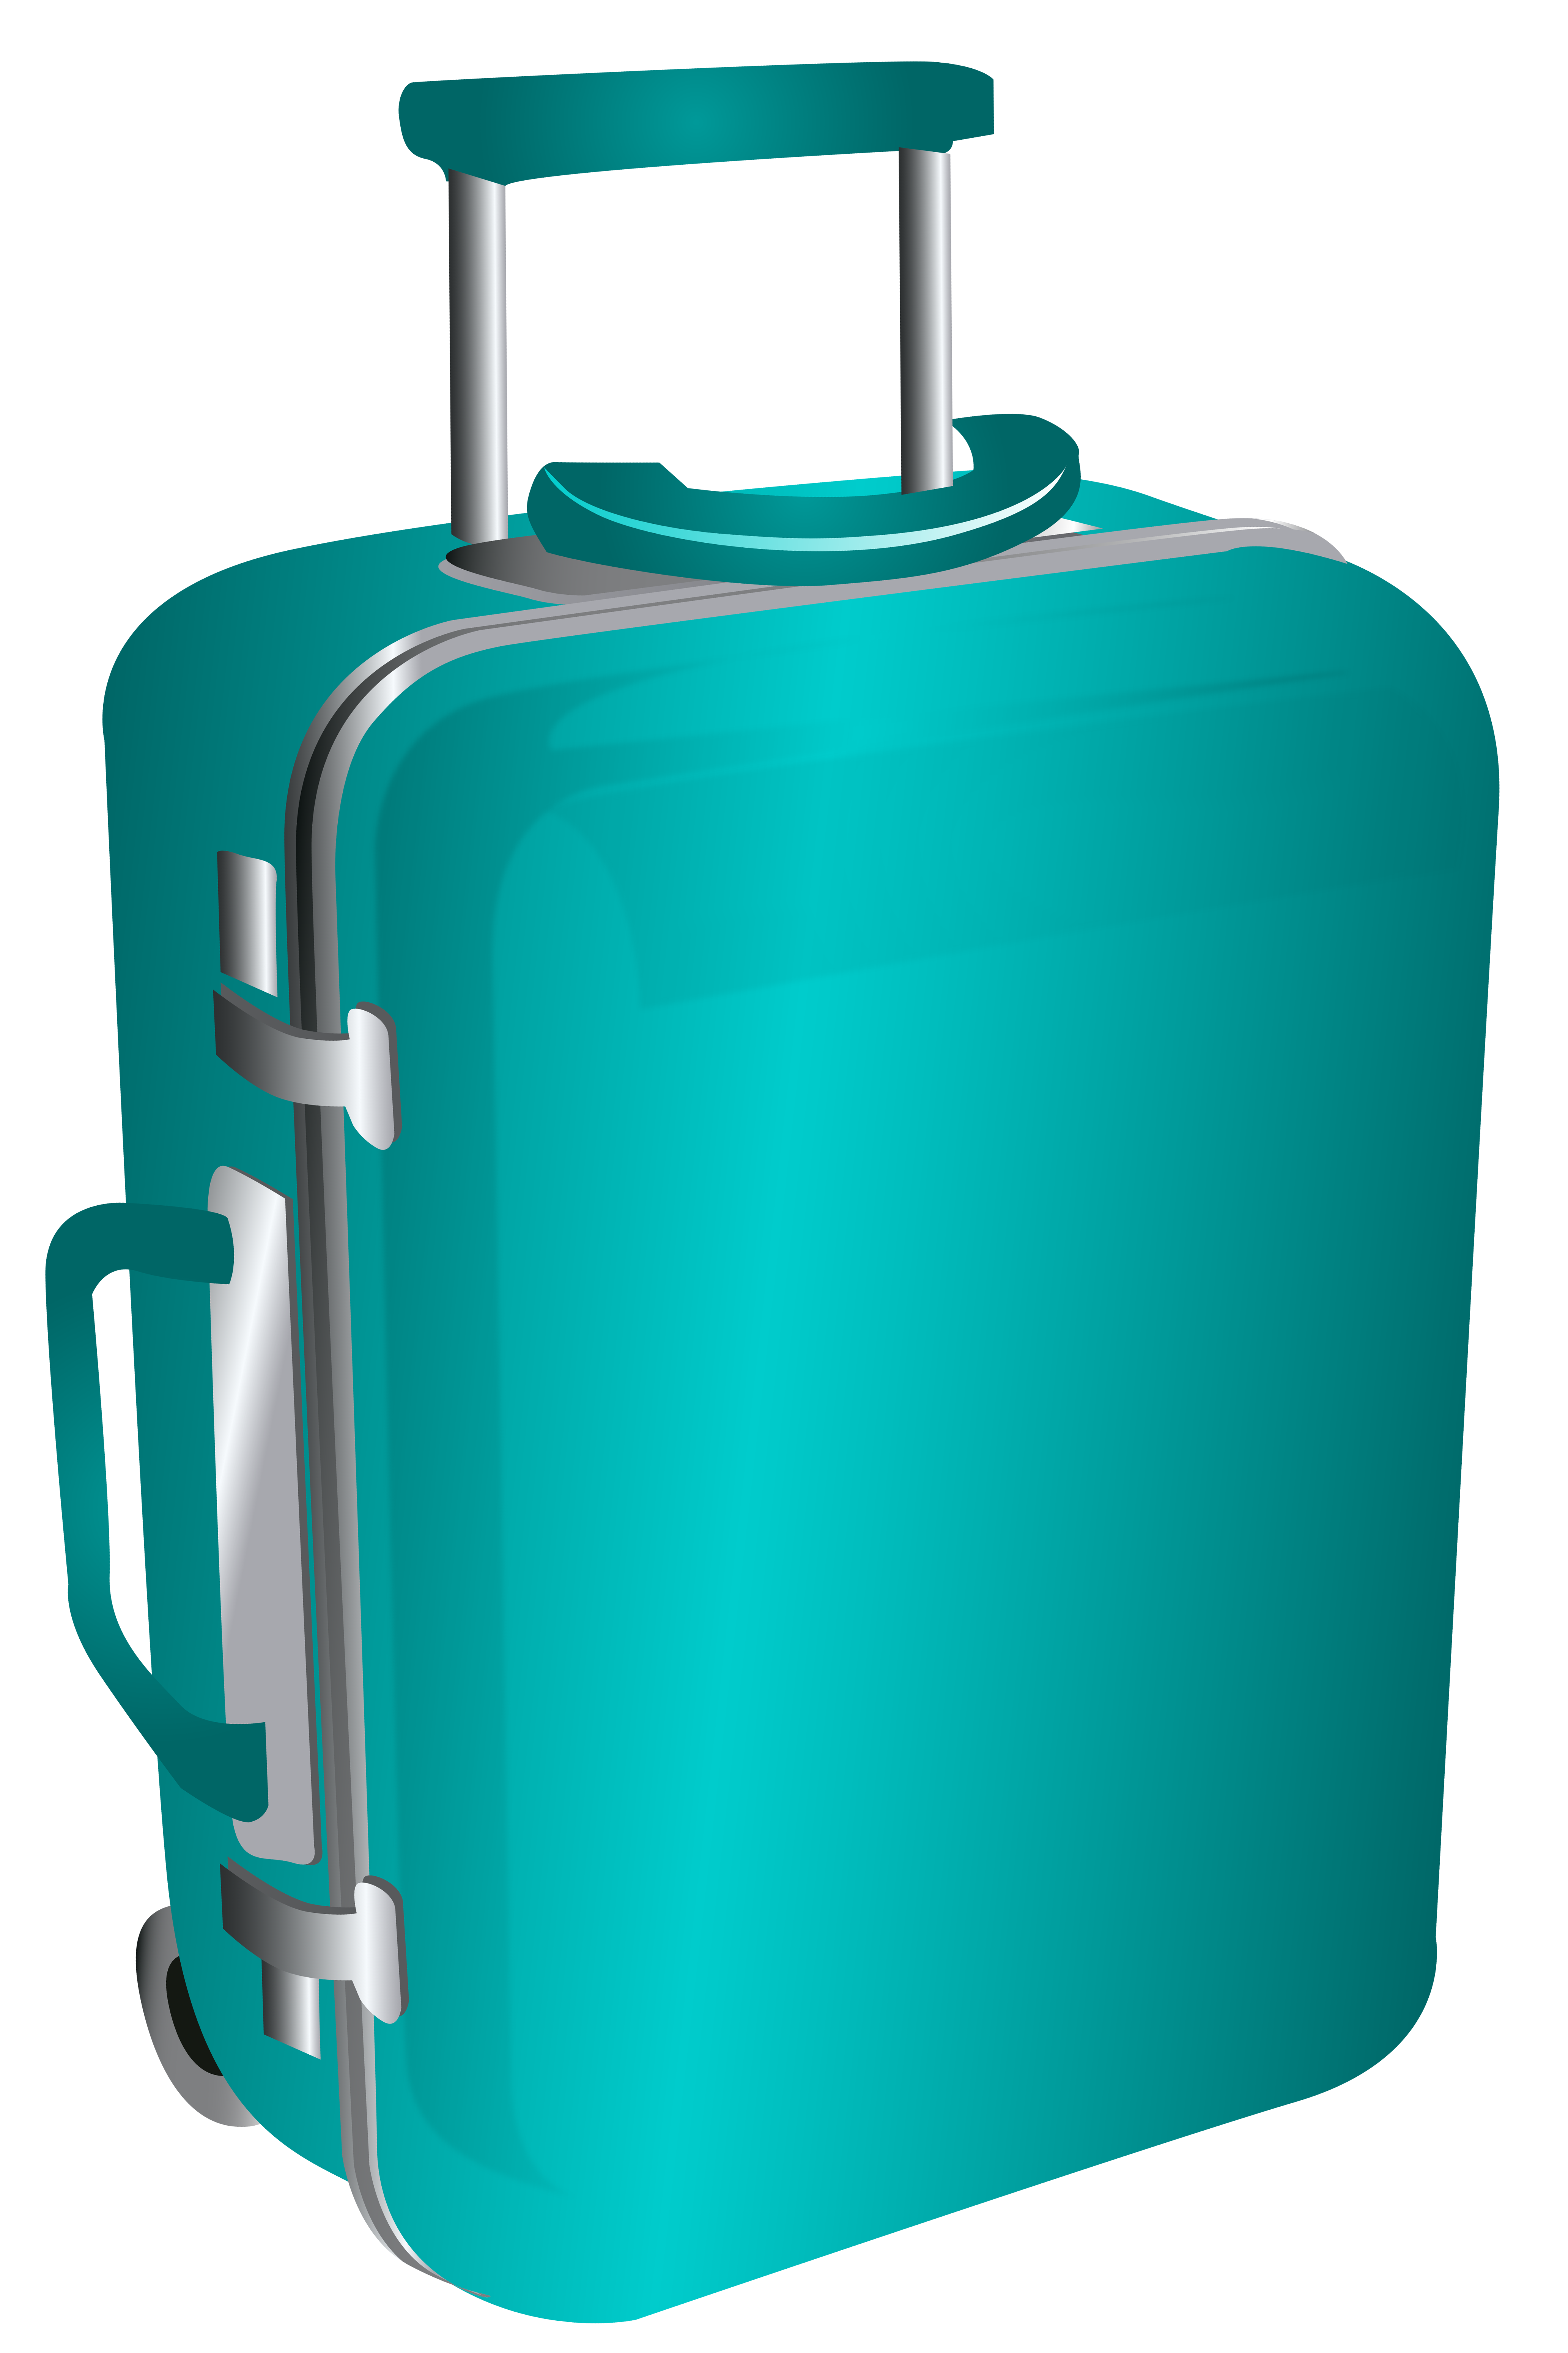 Blue trolley png image. Luggage clipart travel bag